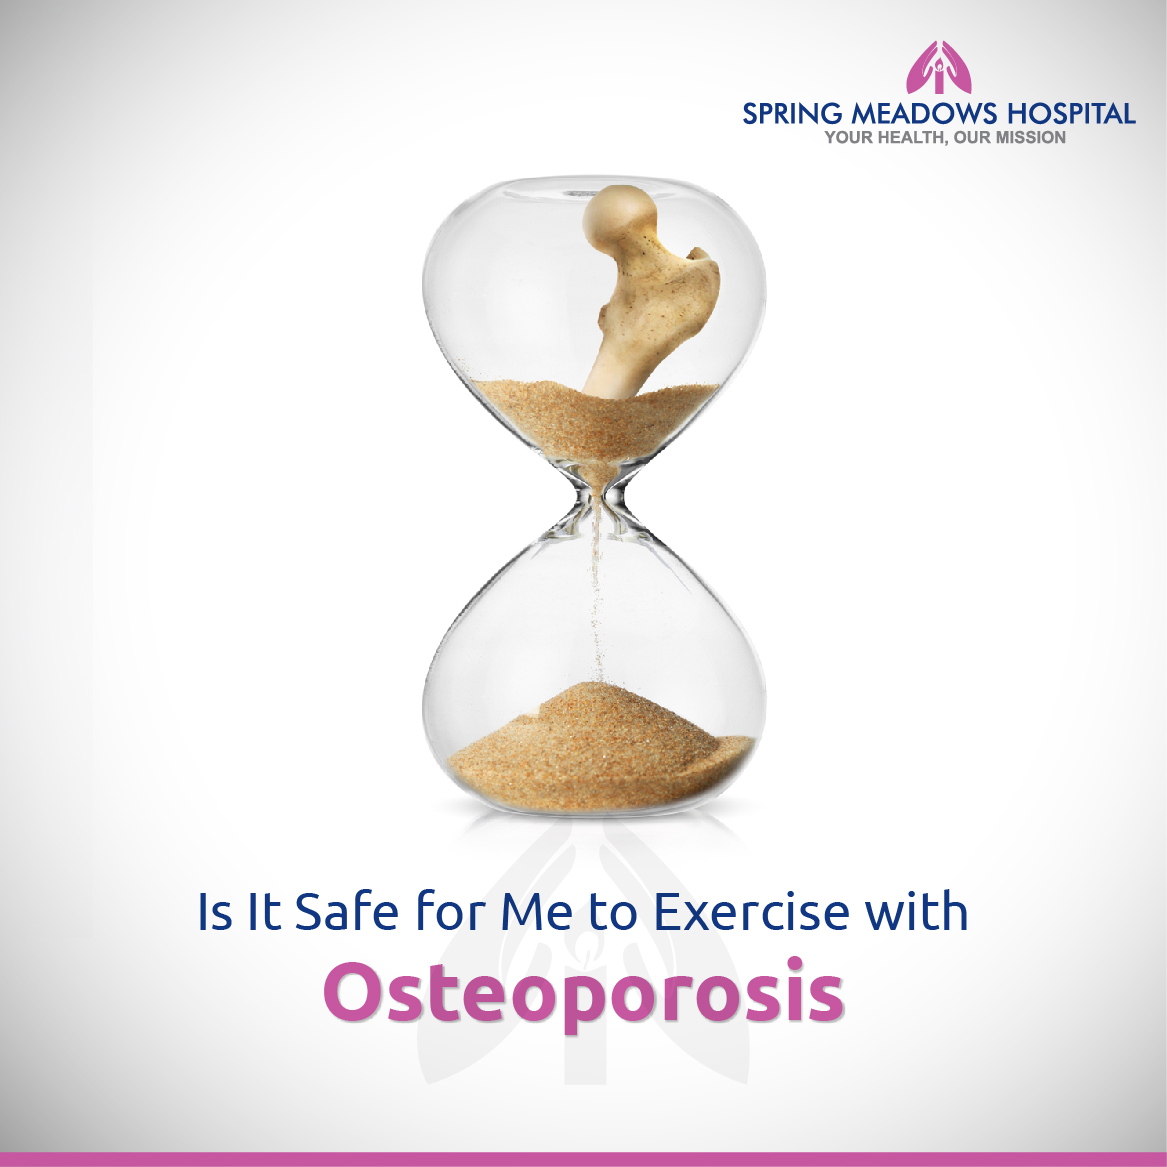 Best Orthopedic Specialist in Delhi - Spring Meadows Hospital